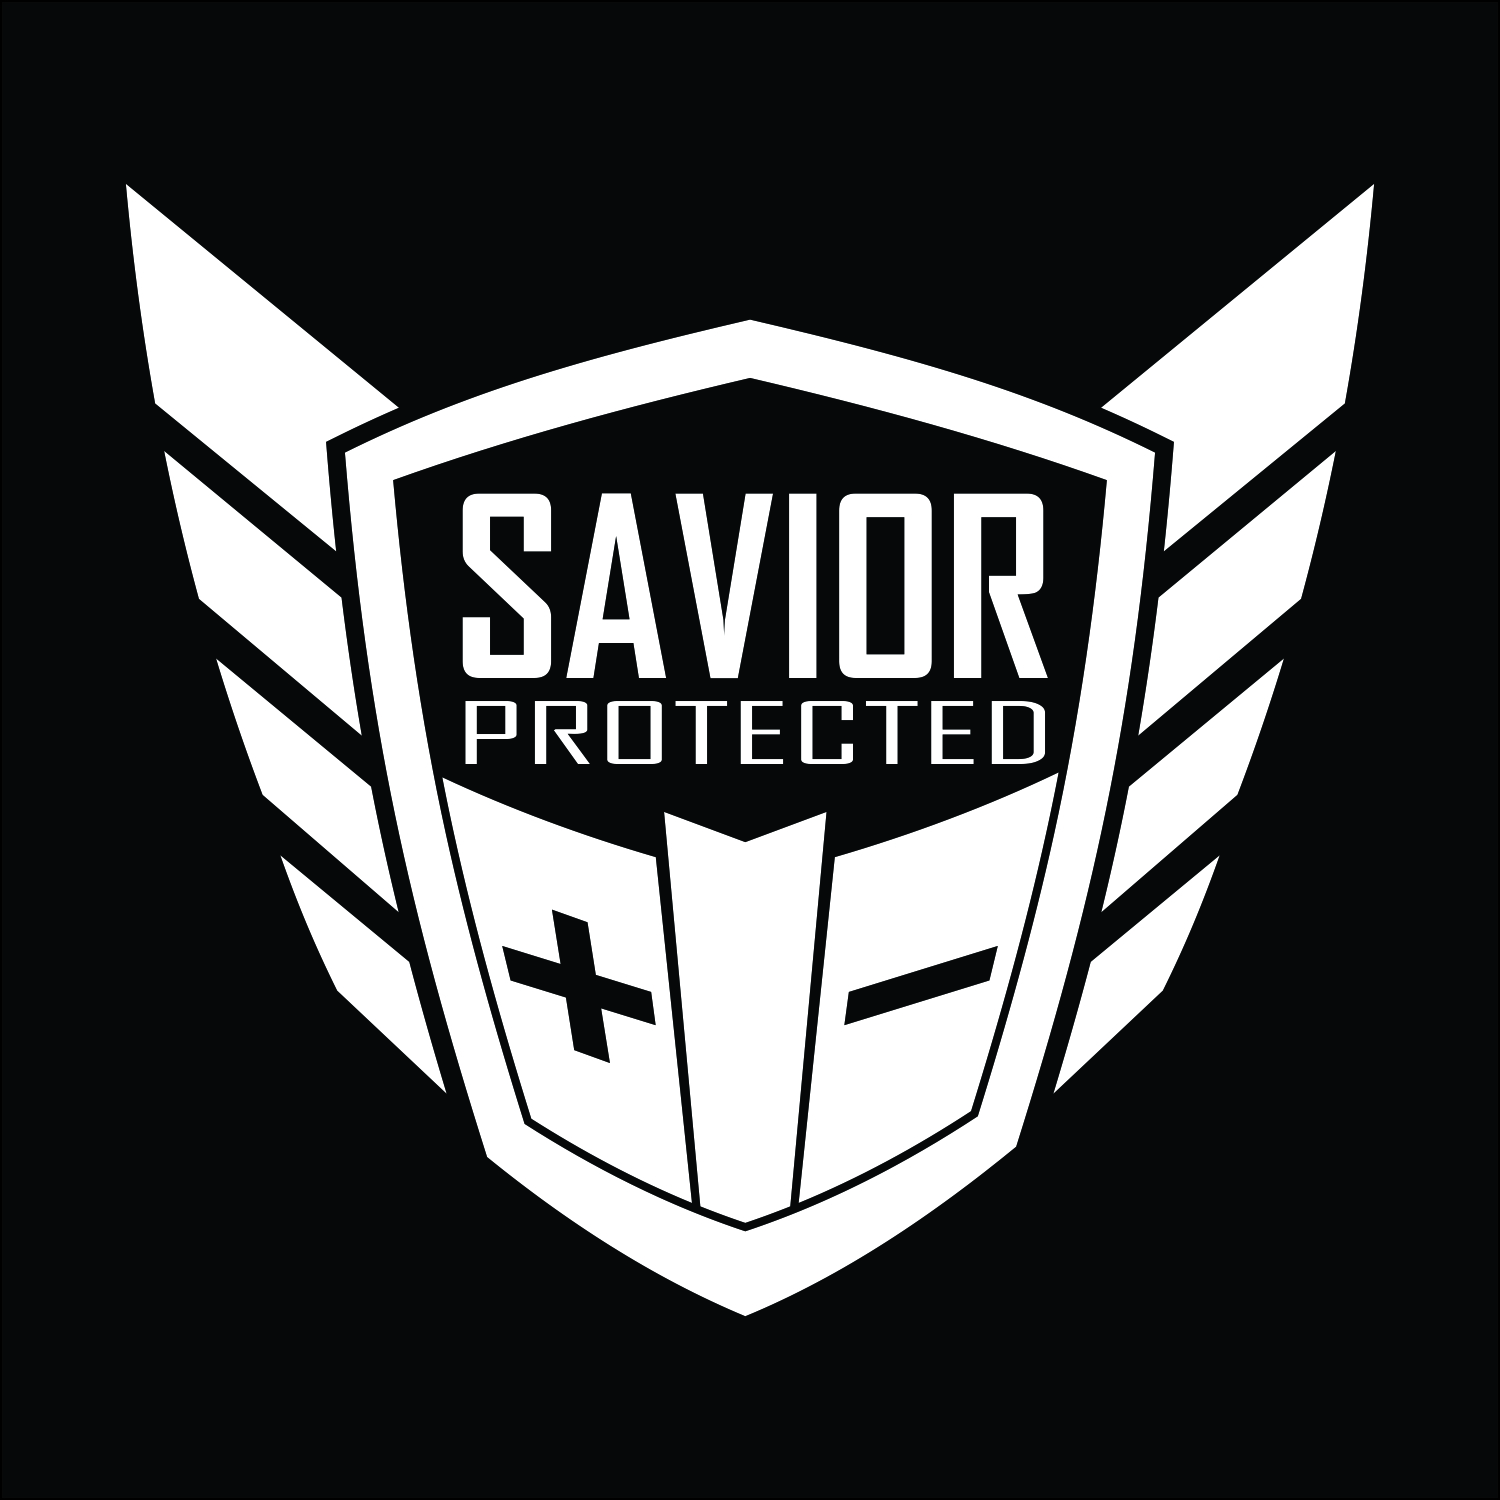 Savior Window Decal Each White